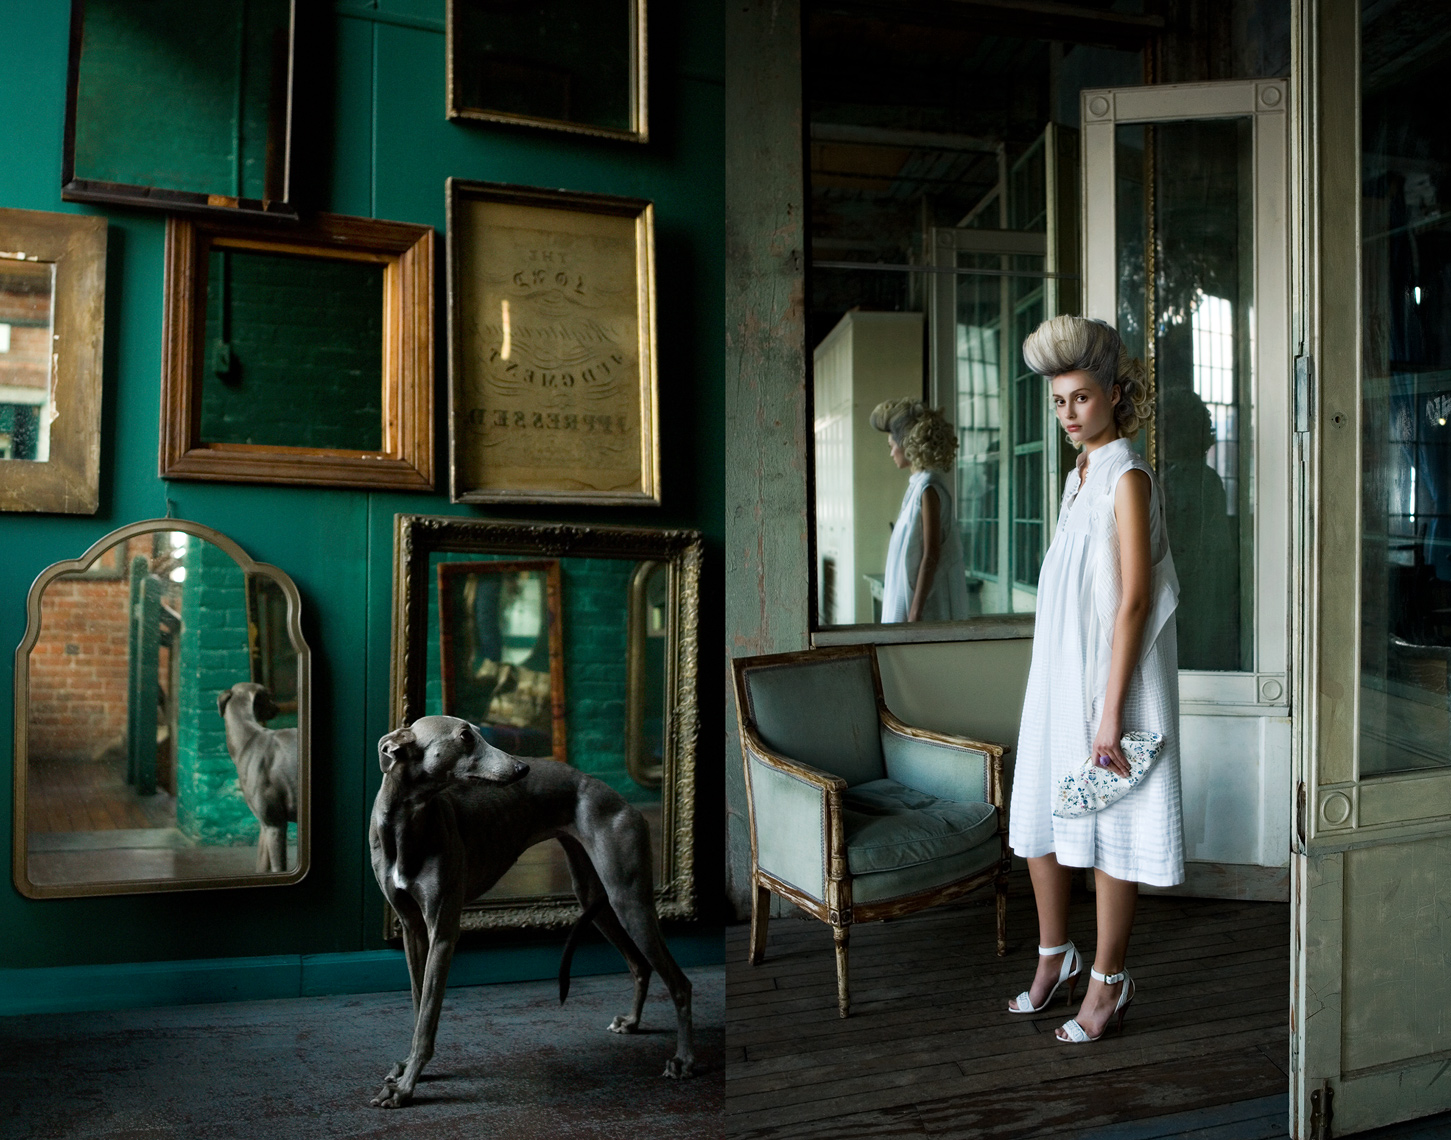 Los Angeles Dog Photography, Michael Brian, pet, cat, Marie Antoinette fashion story, Whippet, Metropolitan building, Long Island City, Footwear Plus